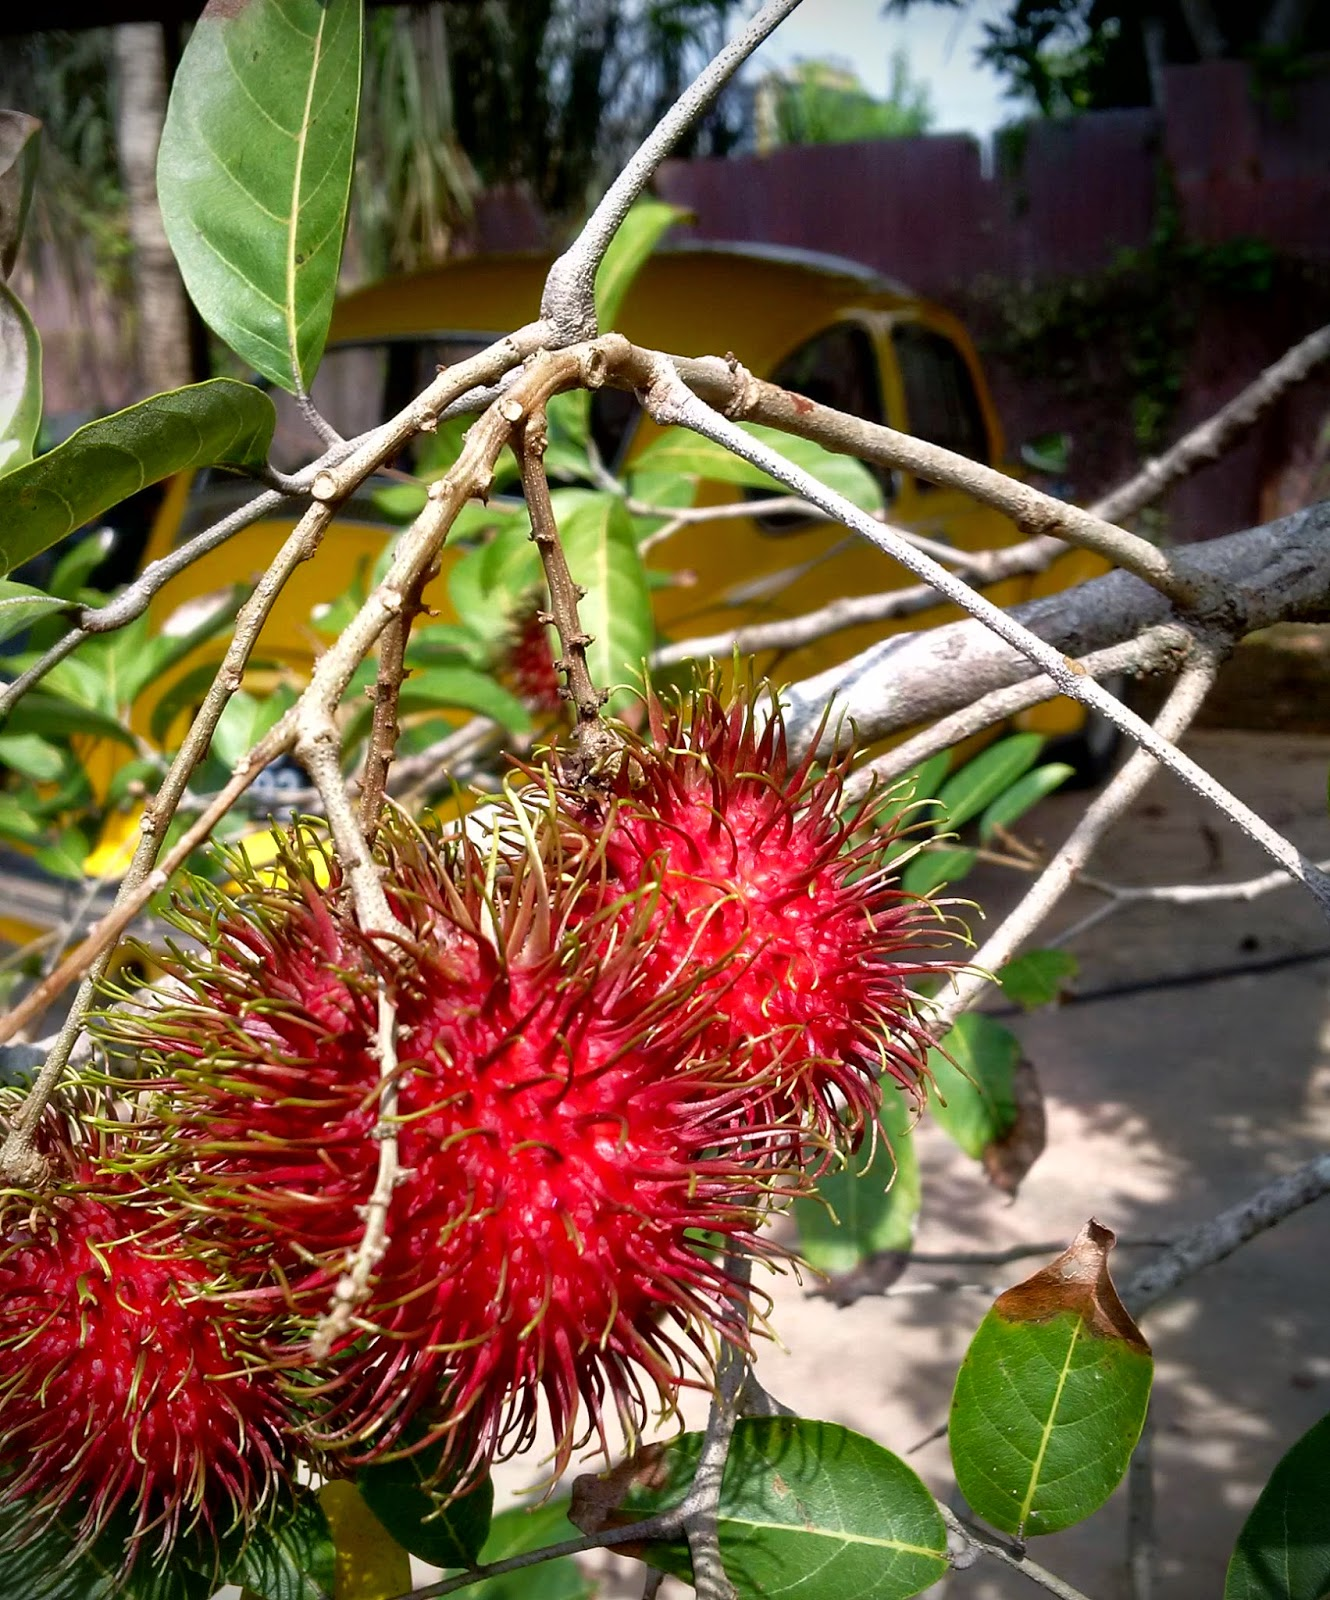 rambutan fruit, hairy fruit, rambutan malaysia, rambutan taste, rambutan benefits, rambutan recipes, gardening, food,